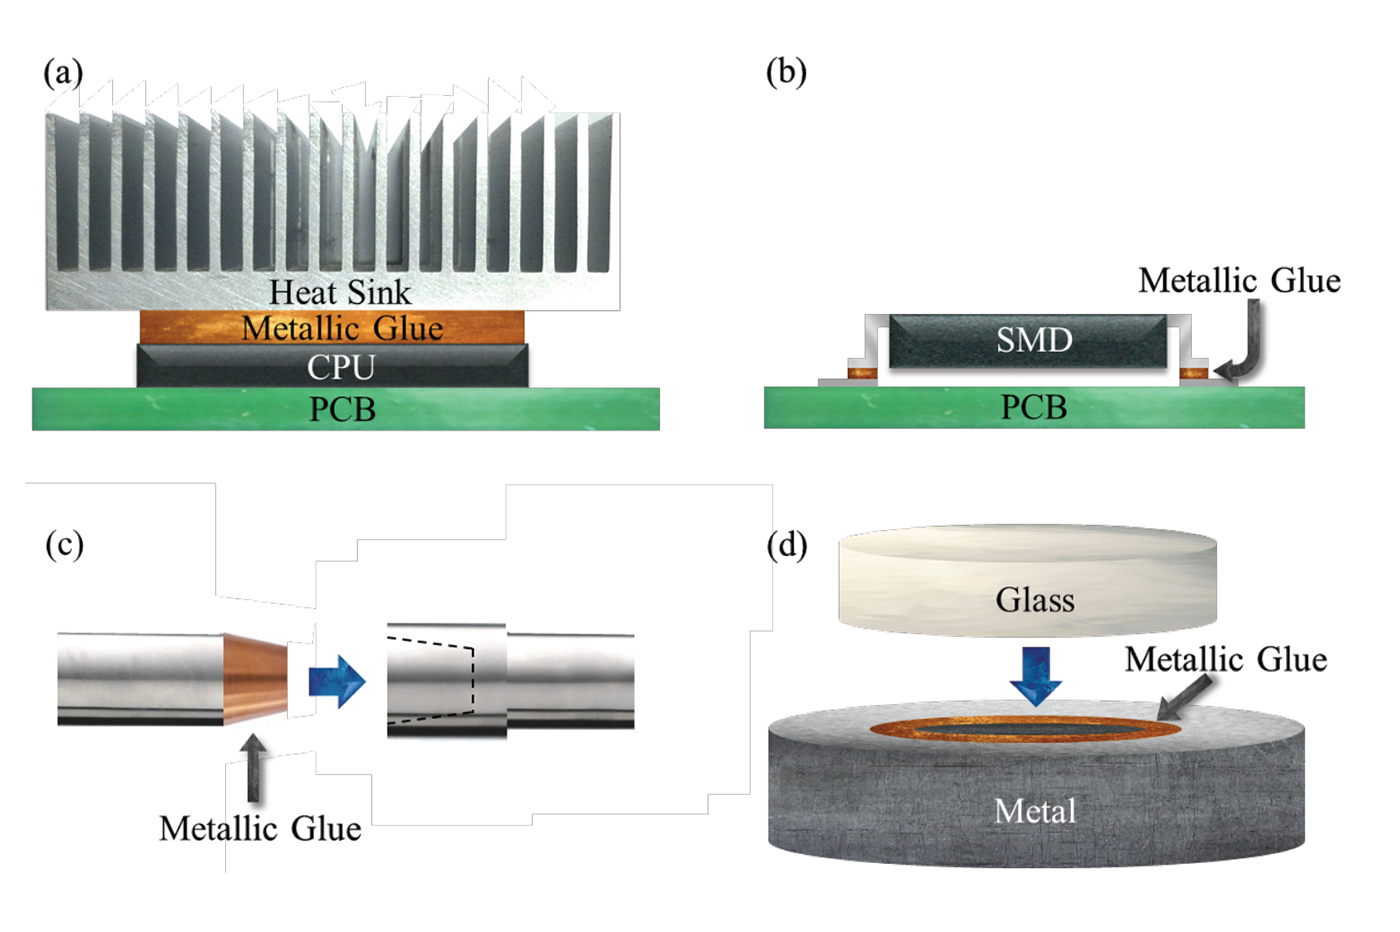 Researchers Metallic Glue May Stick It To Soldering And Welding Al Pcb With Metal Core Aluminum Printed Circuit Boards